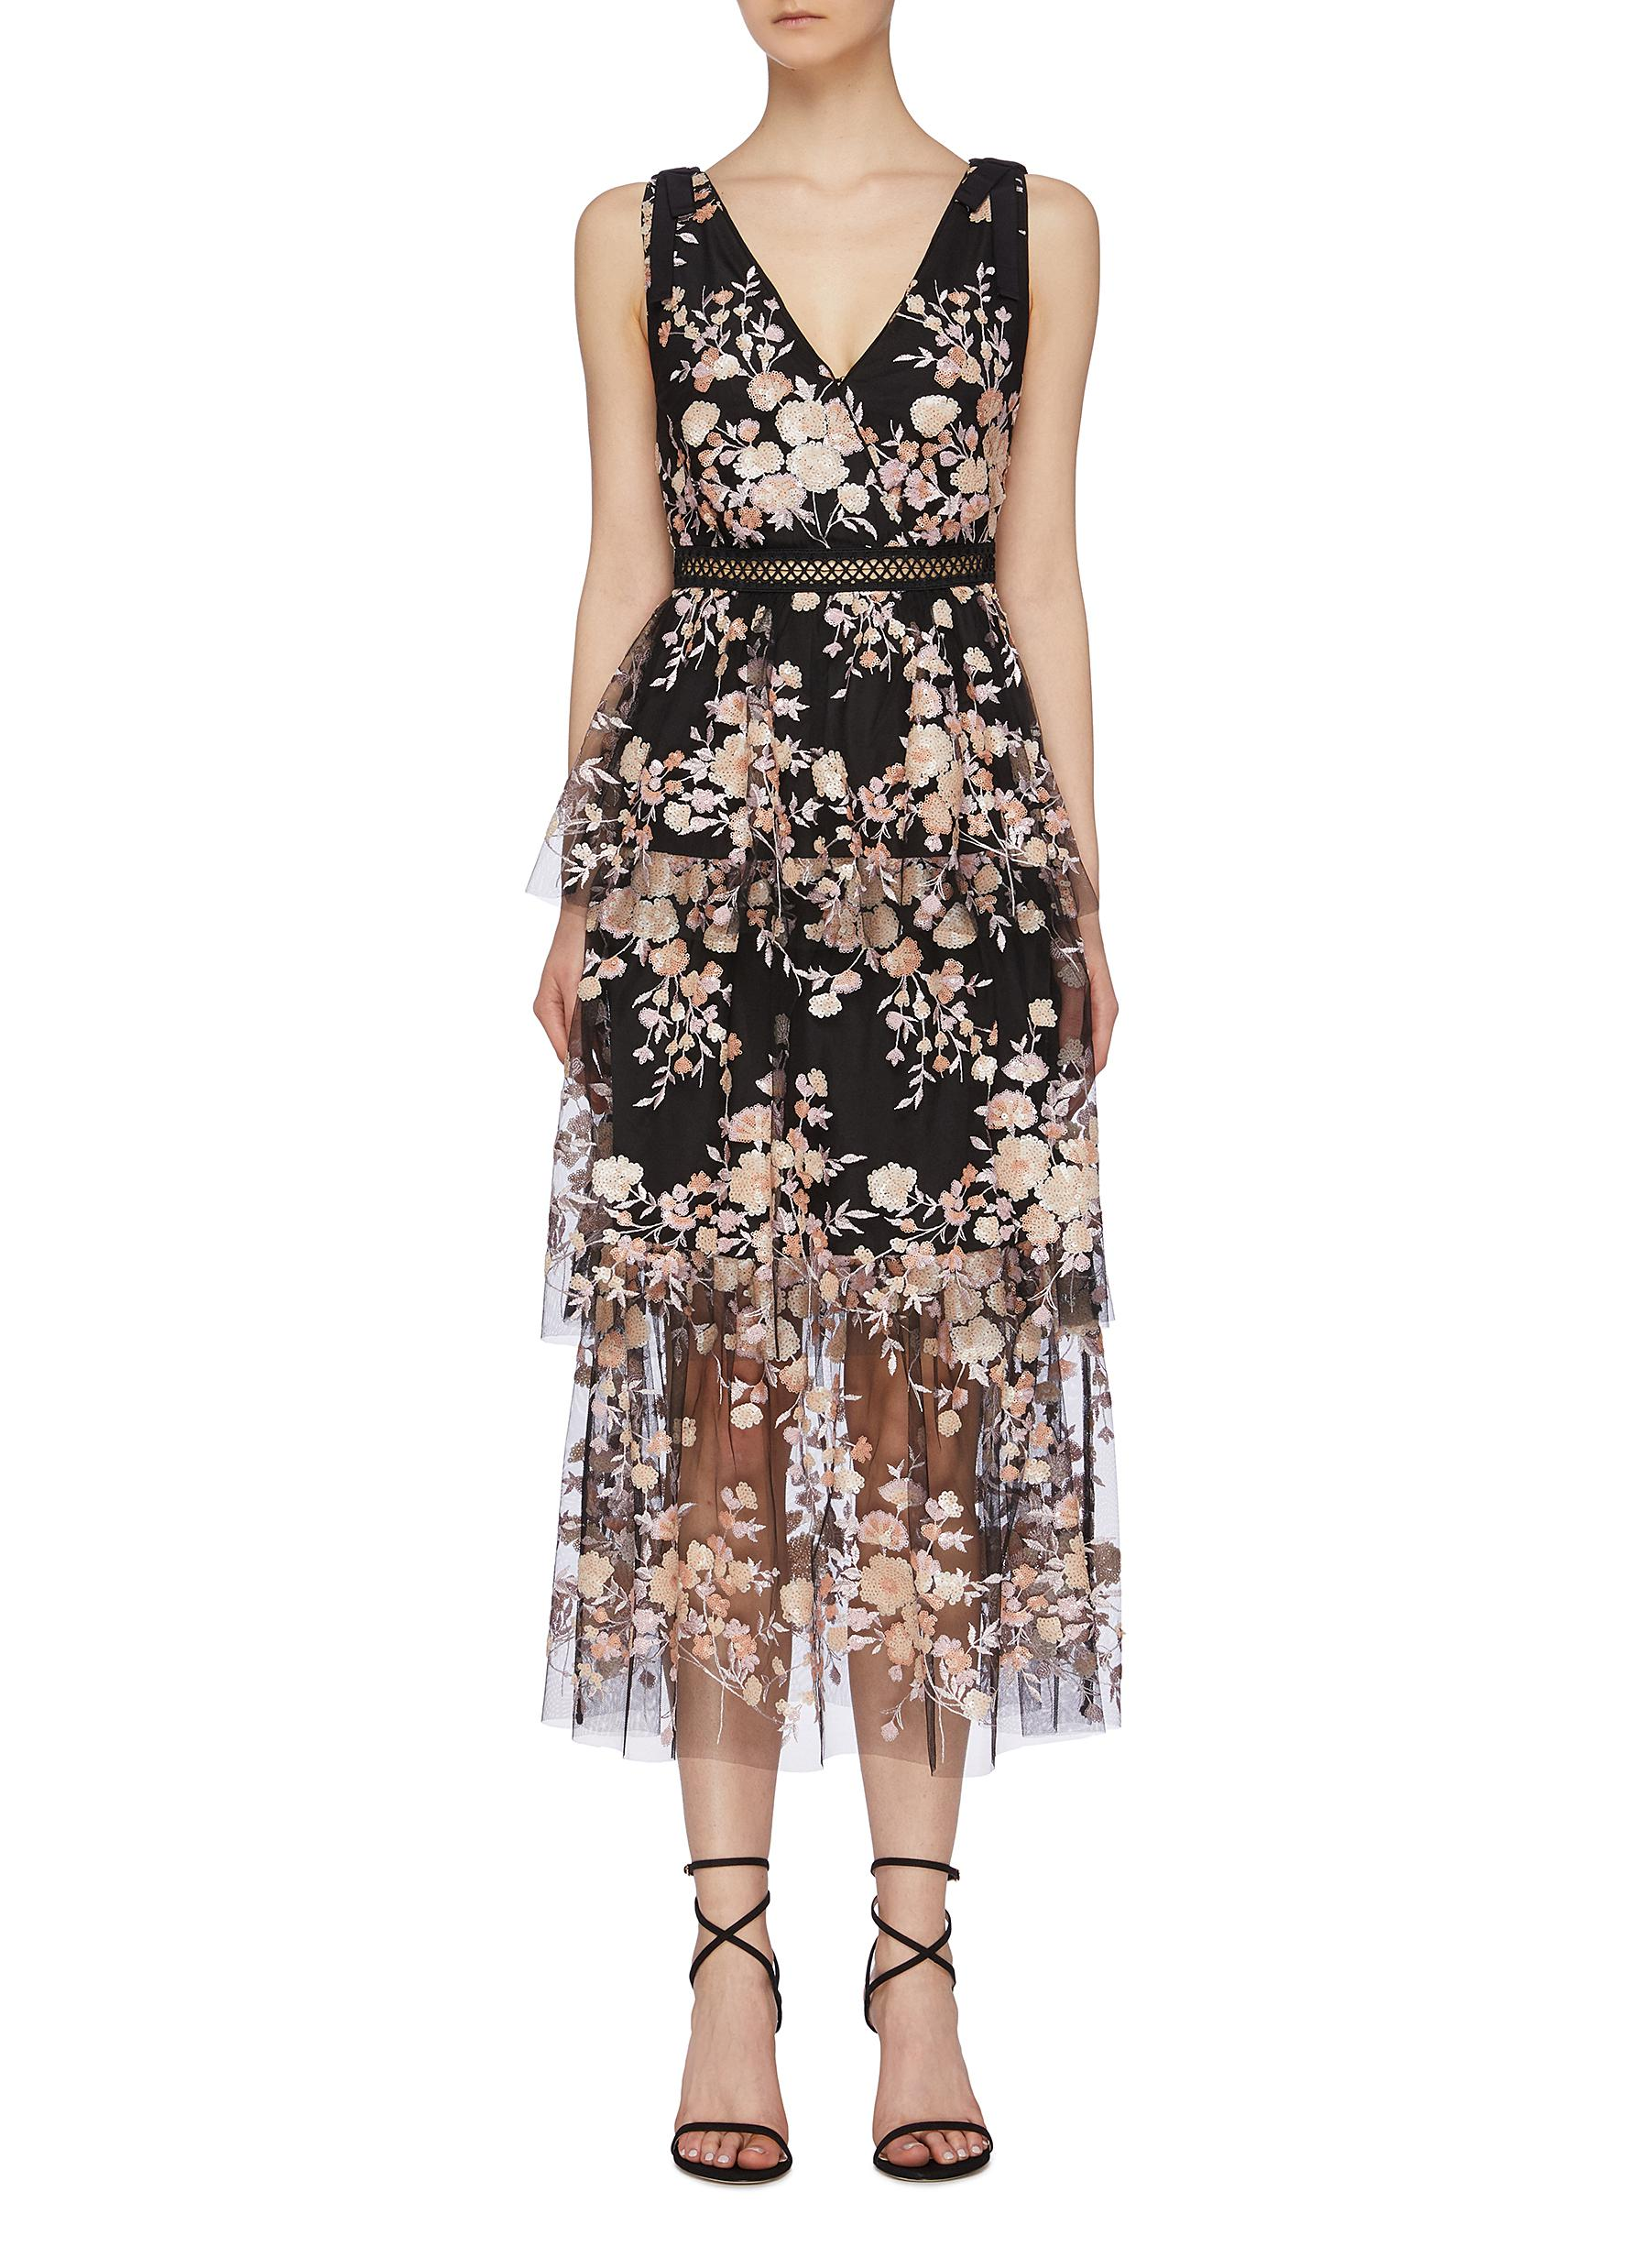 Sequin floral mesh tiered sleeveless dress by Self-Portrait